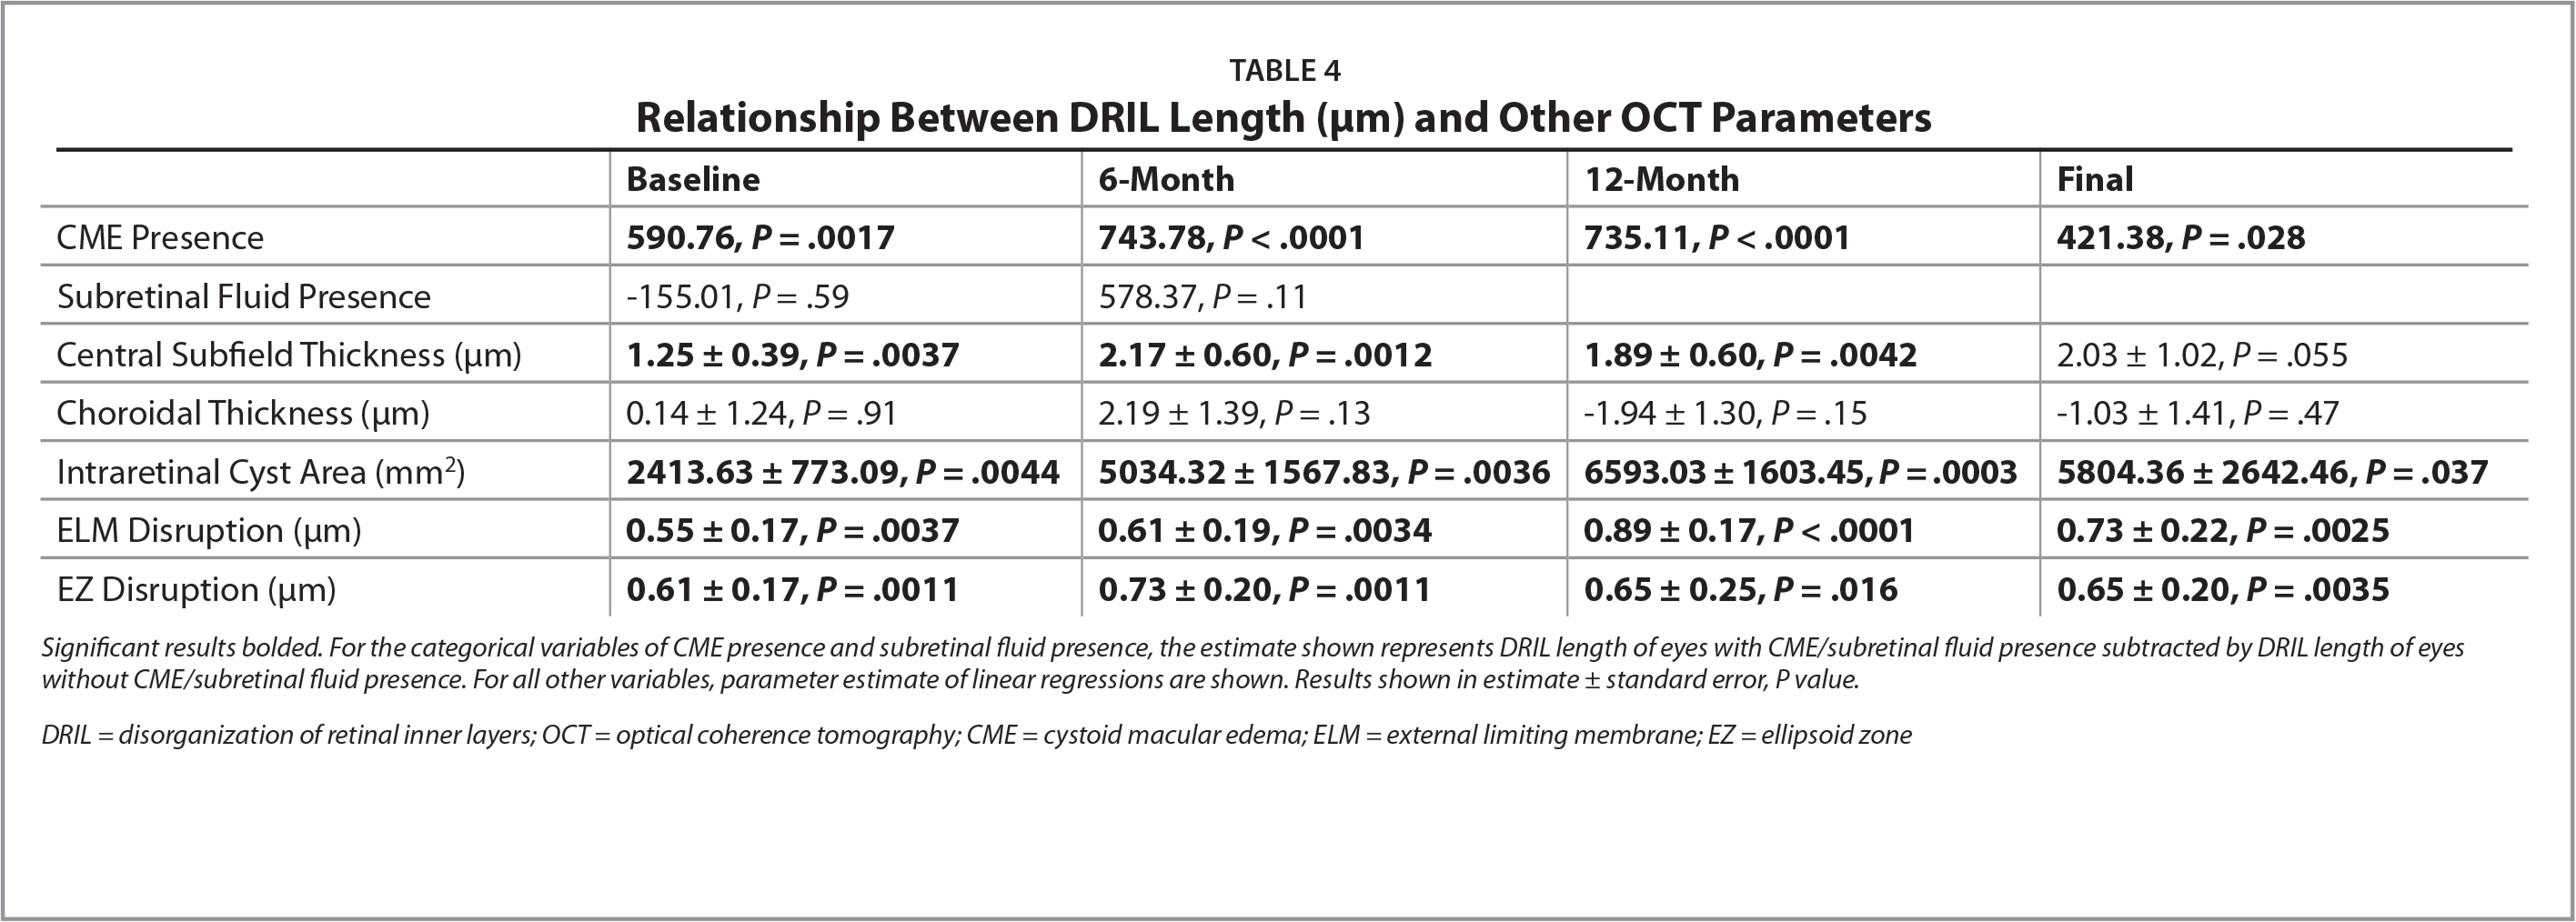 Relationship Between DRIL Length (μm) and Other OCT Parameters